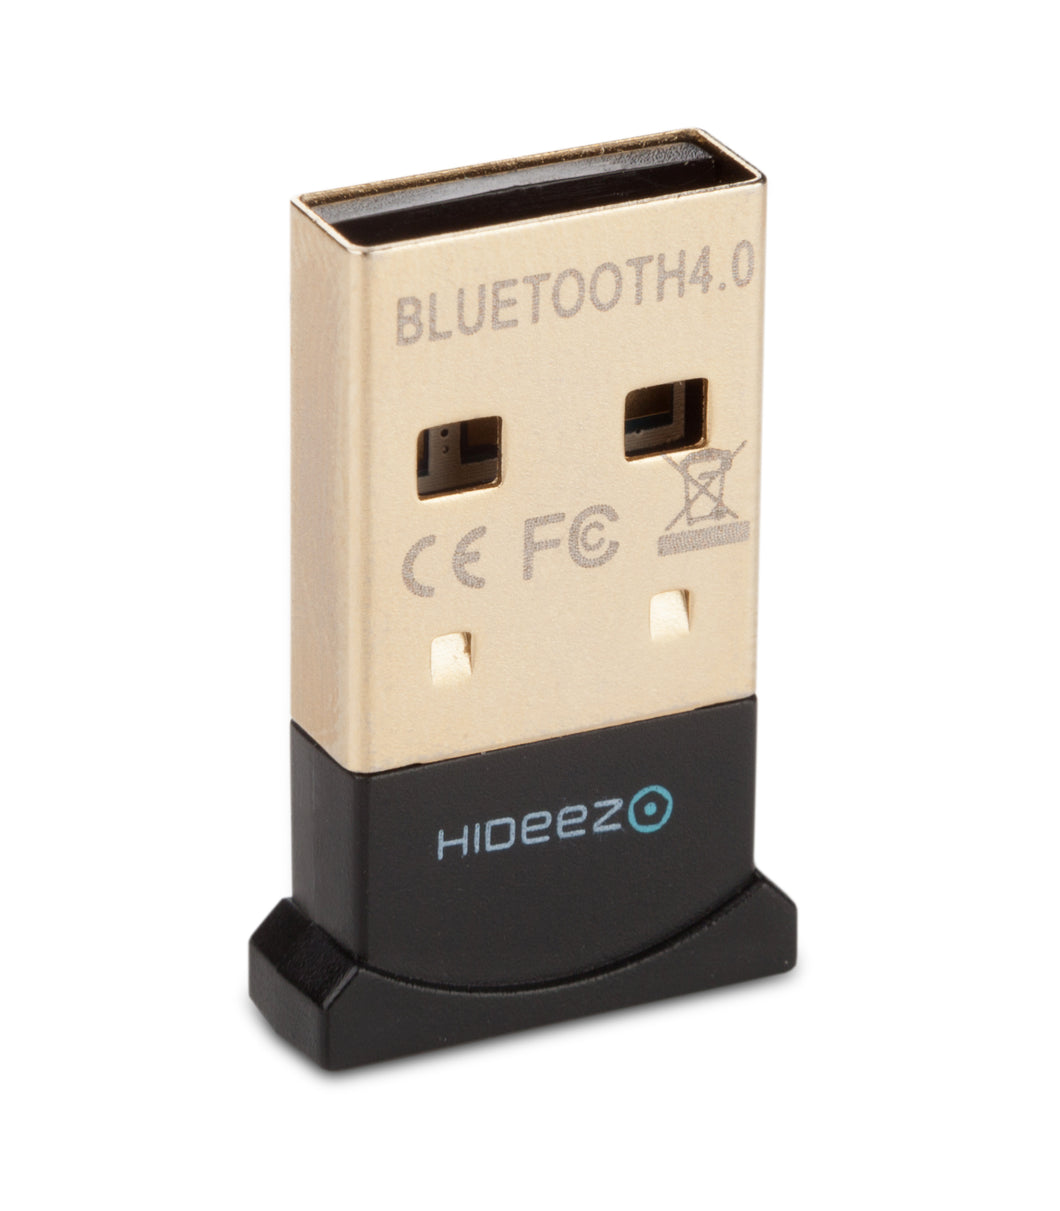 Hideez Bluetooth Dongle for Windows and Mac OS